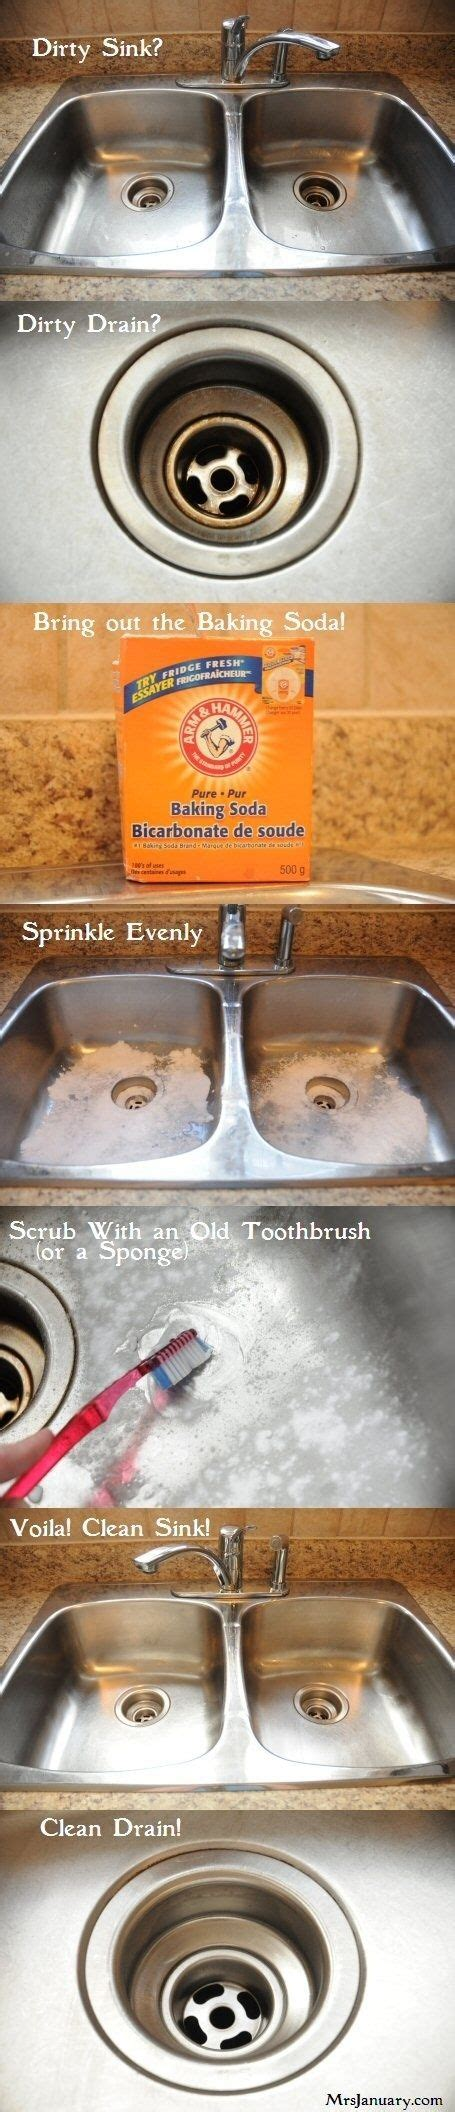 Stains Stove And Sodas On Pinterest How To Clean Kitchen Sink With Baking Soda